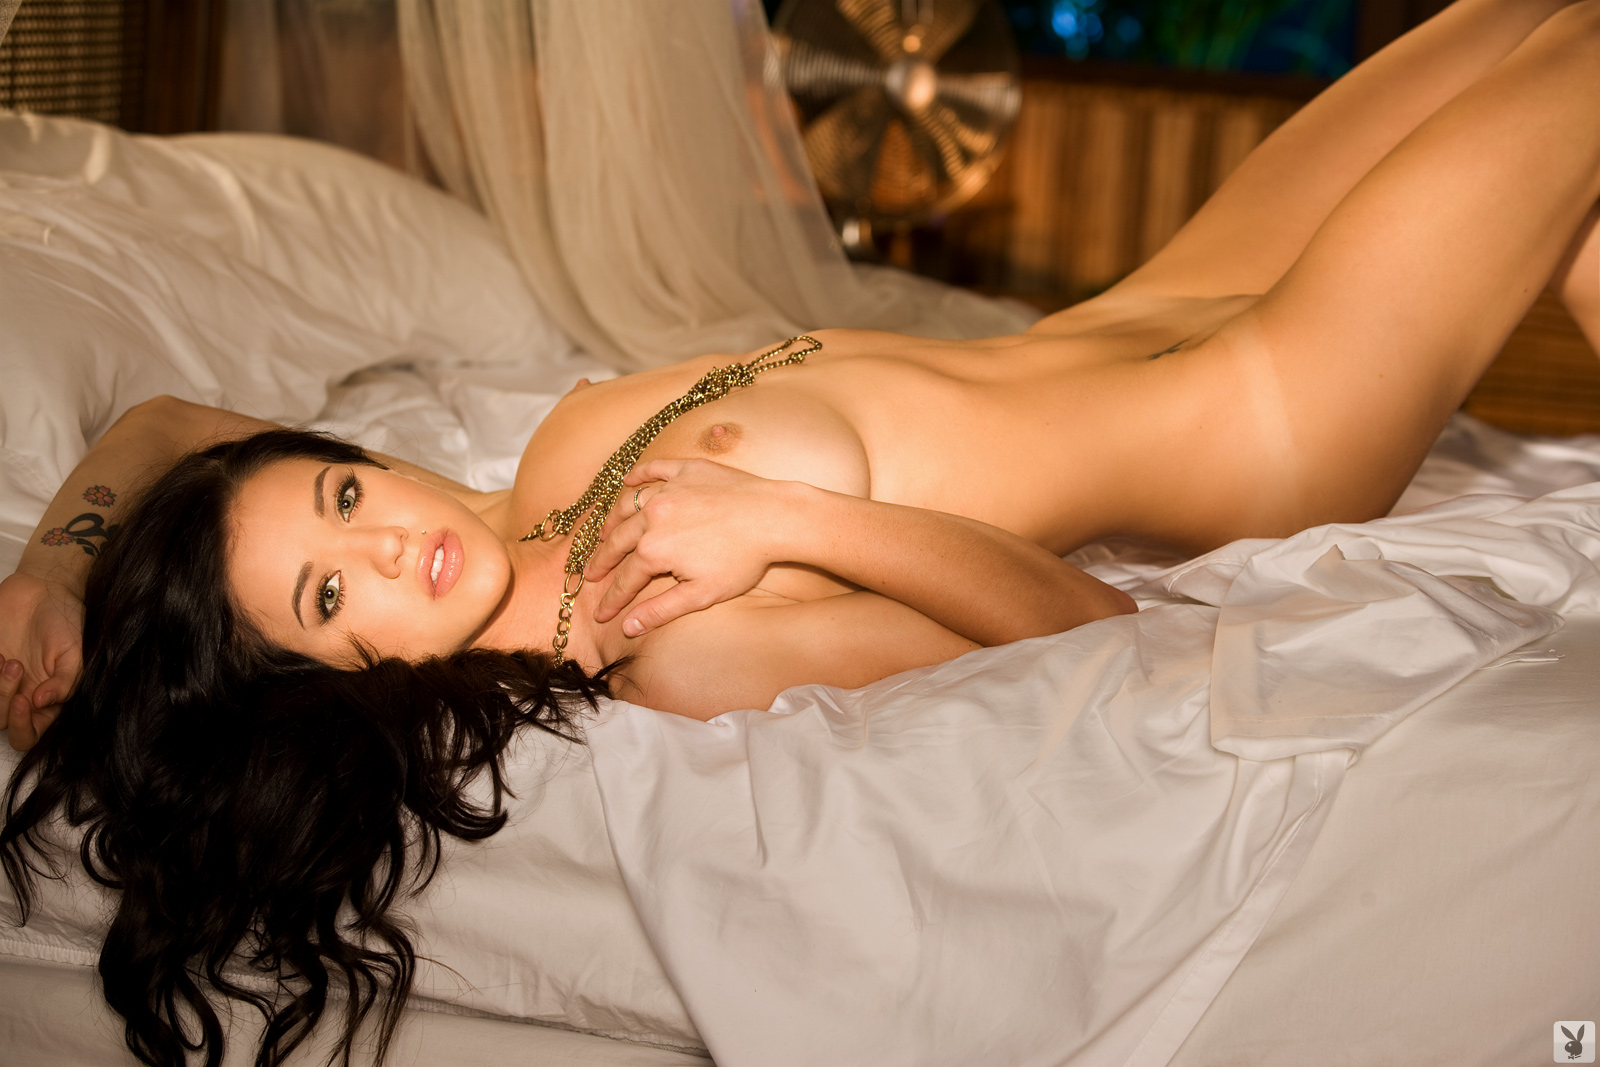 Tess taylor nude pictures